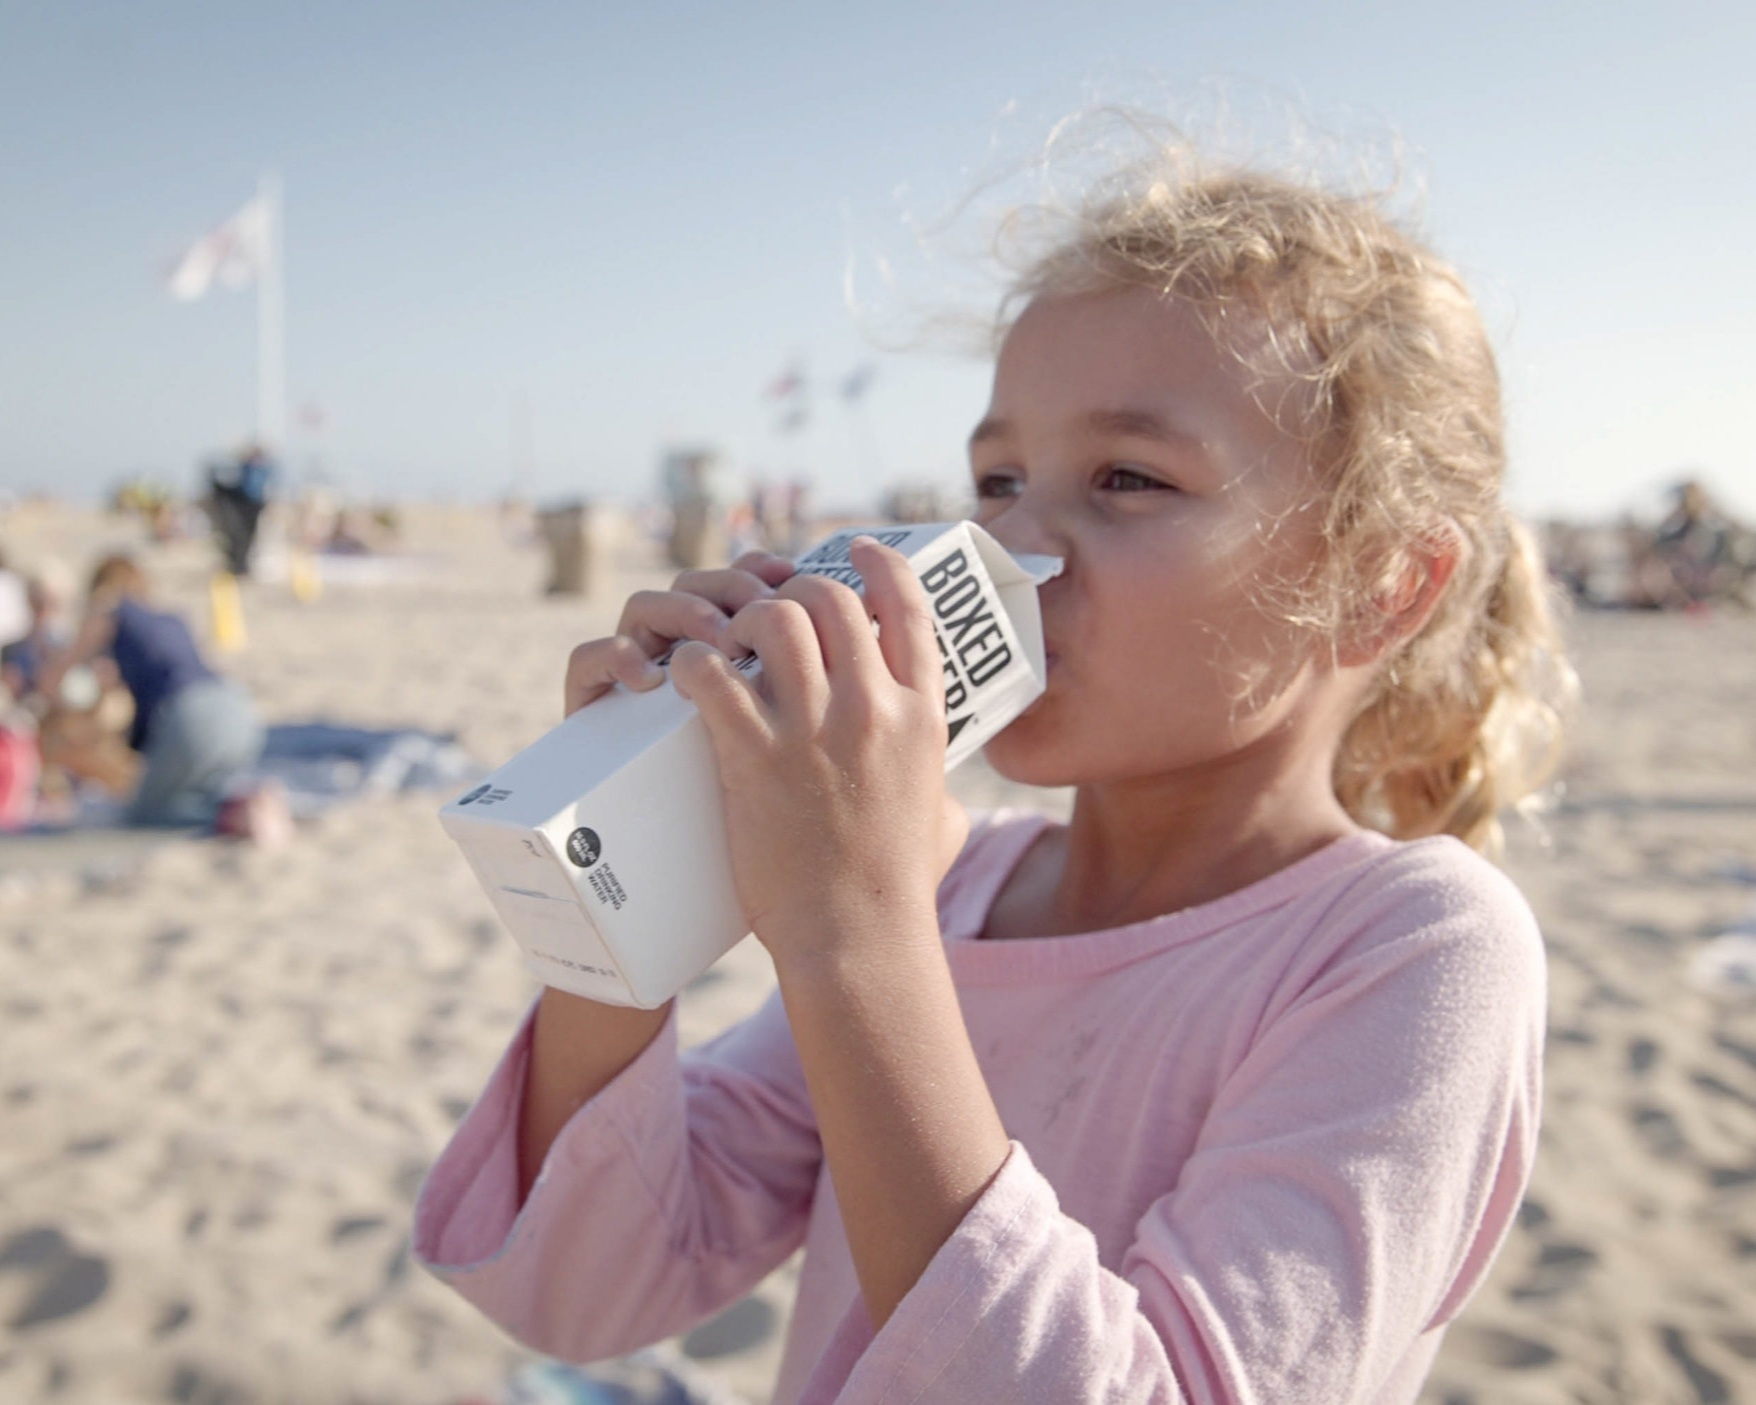 for parents - How Much Water Do Kids Need? The amount of water a child needs every day varies depending on so many factors. We're breaking it down for you.